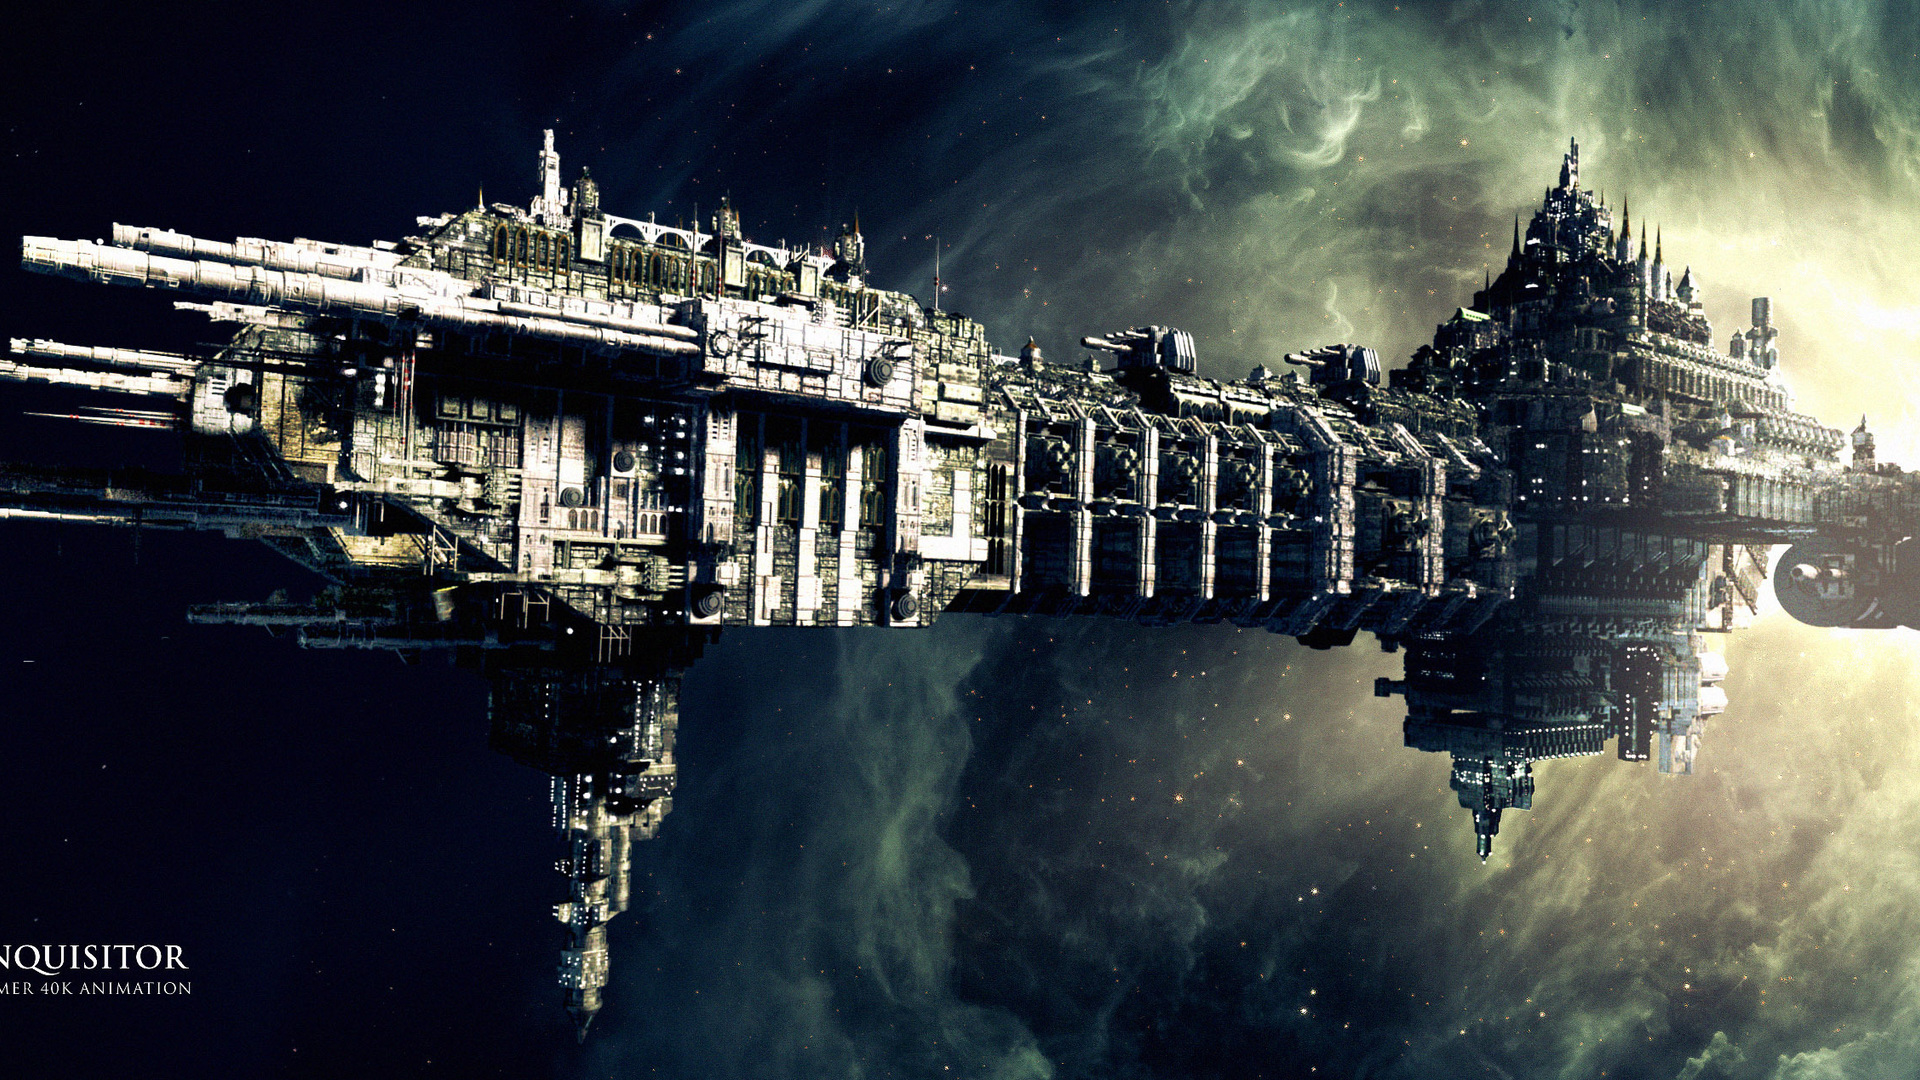 Warhammer 40k Animation Ship Coteaz Nebula The Warhammer 40k Space 1920x1080 Wallpaper Teahub Io